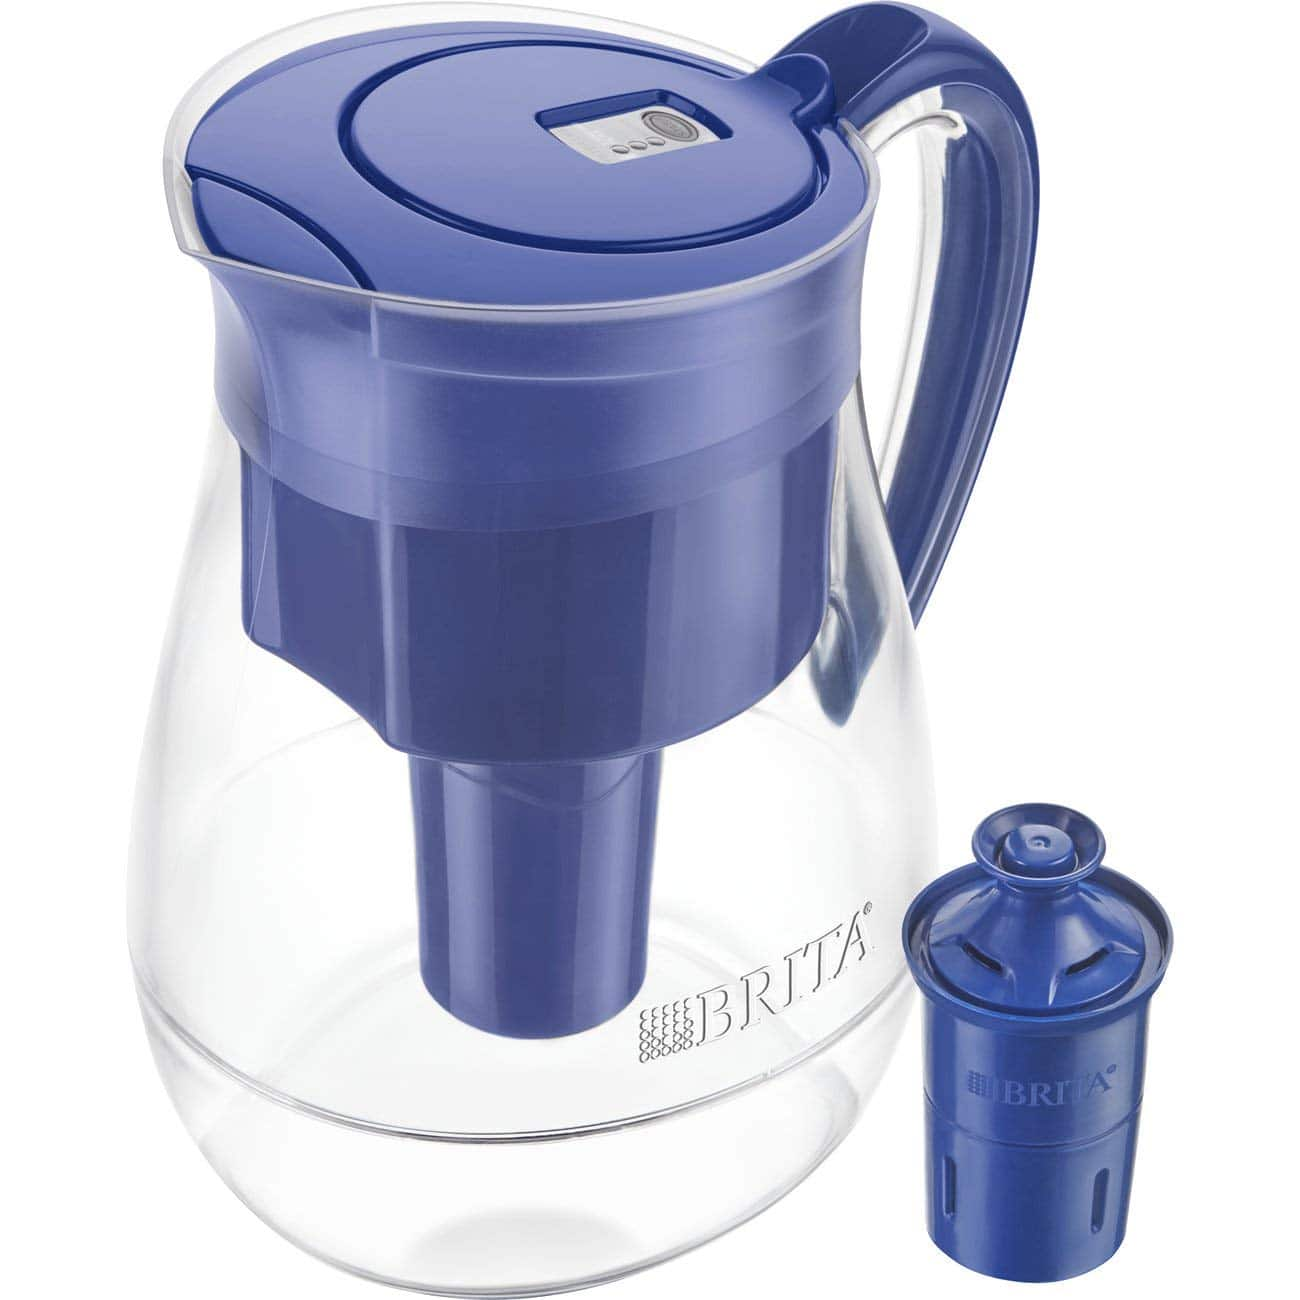 Brita Large 10 Cup Water Filter Pitcher with 1 Longlast Filter, Reduces Lead, BPA Free – Monterey, Blue for $27.99